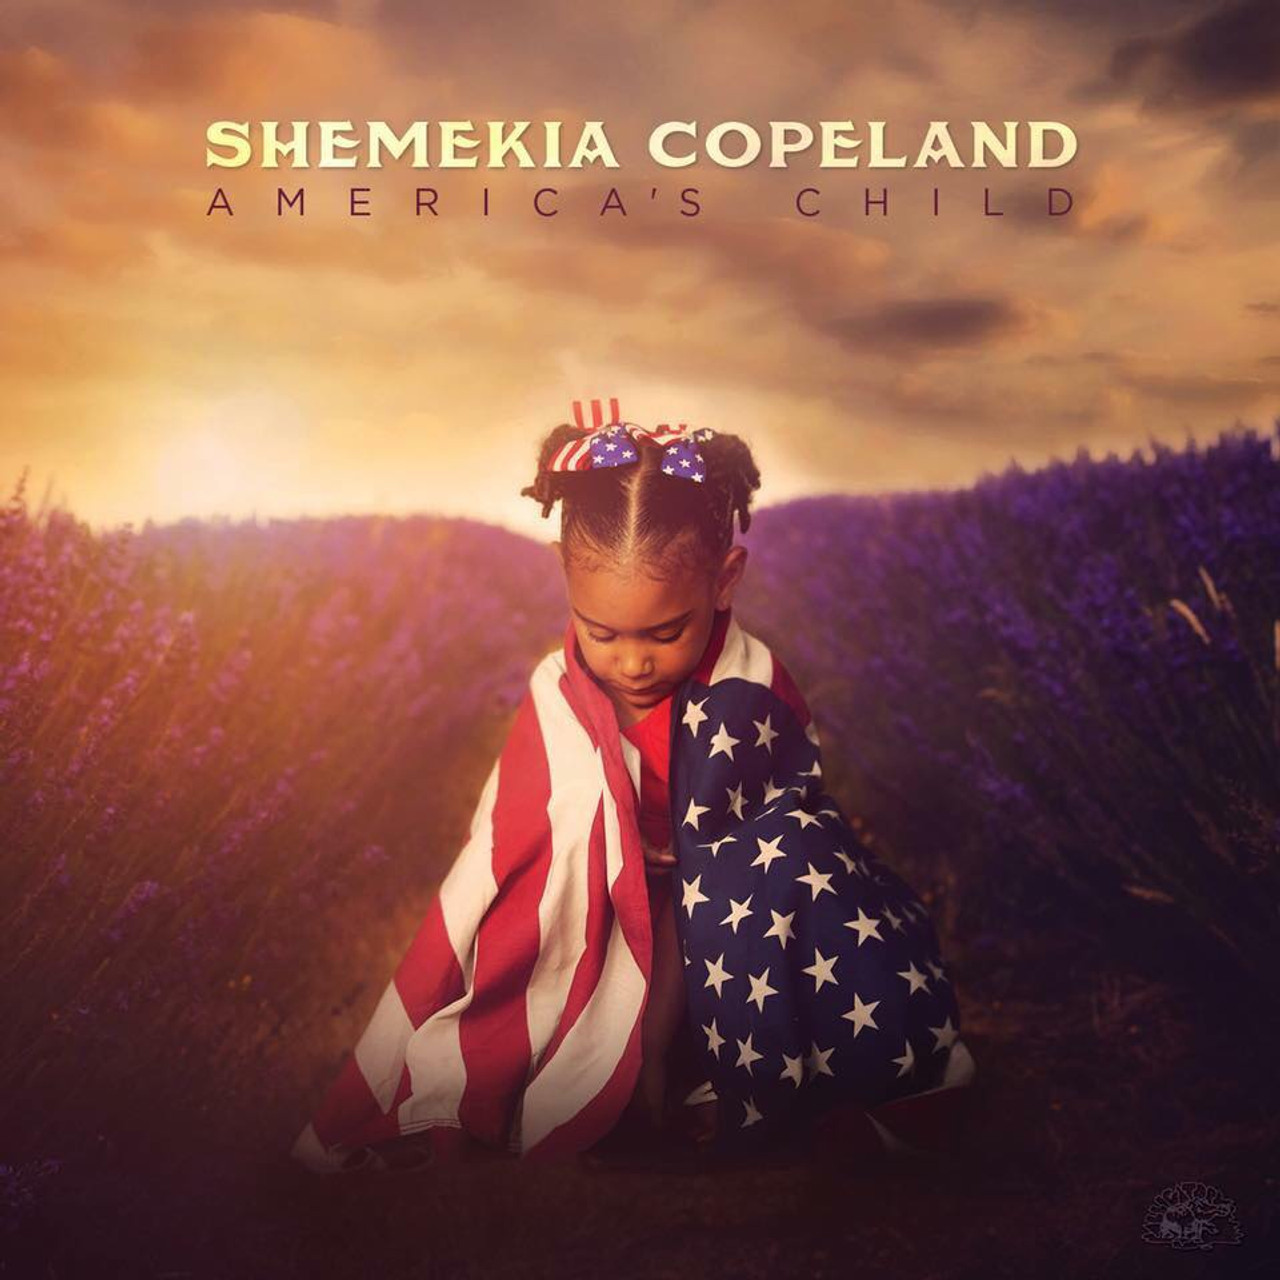 SHEMEKIA COPELAND - AMERICA'S CHILD